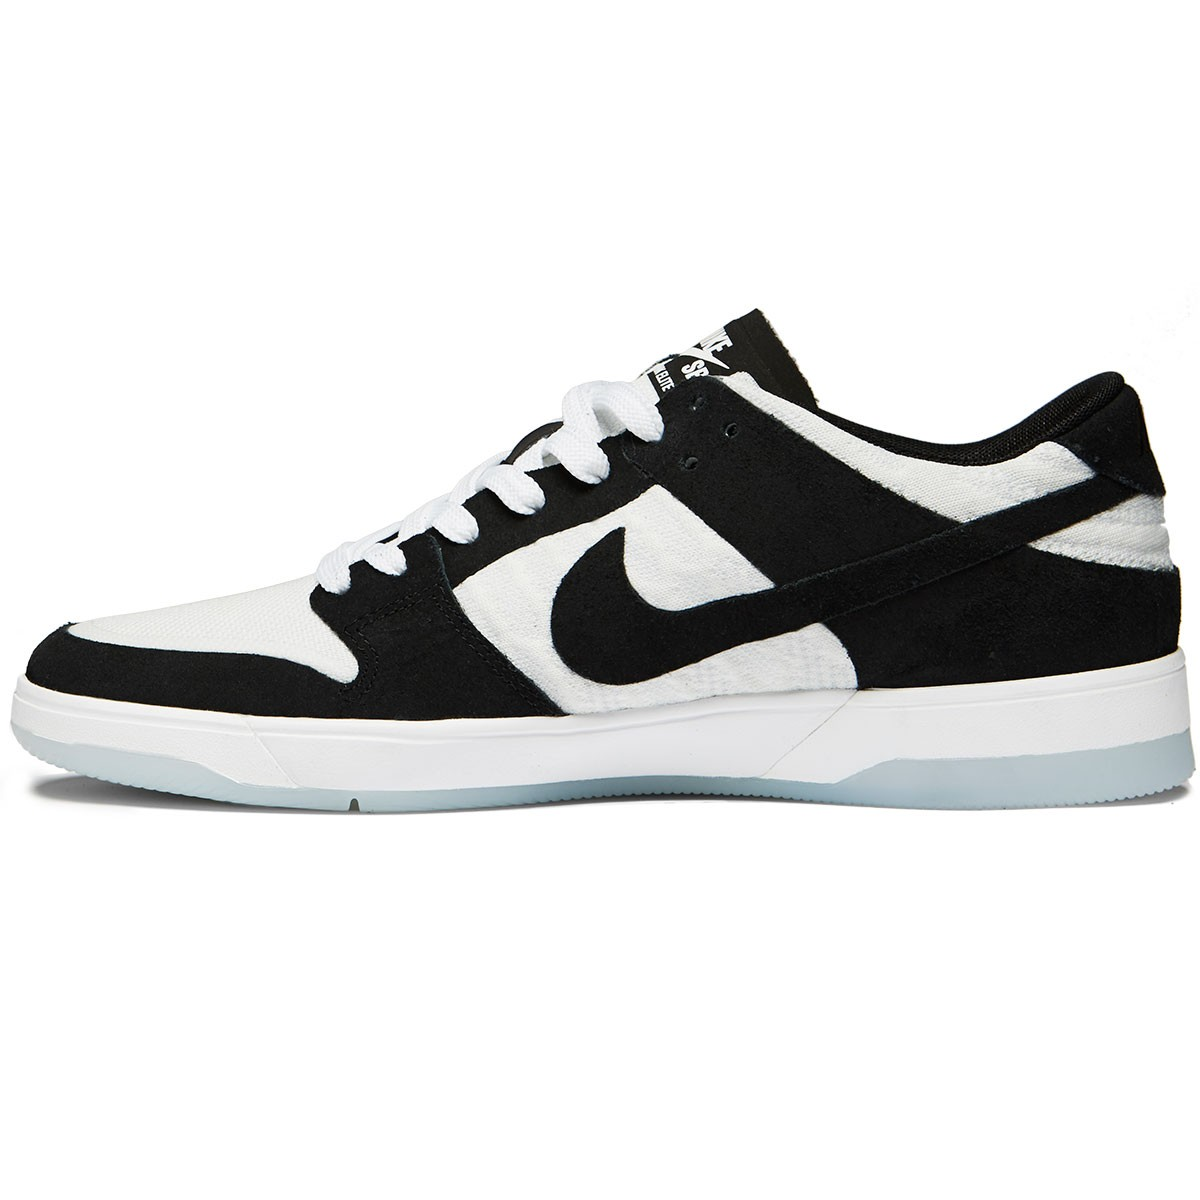 0114d70e81d8 Nike SB Oski Zoom Dunk Low Elite QS Shoes - Black Black White